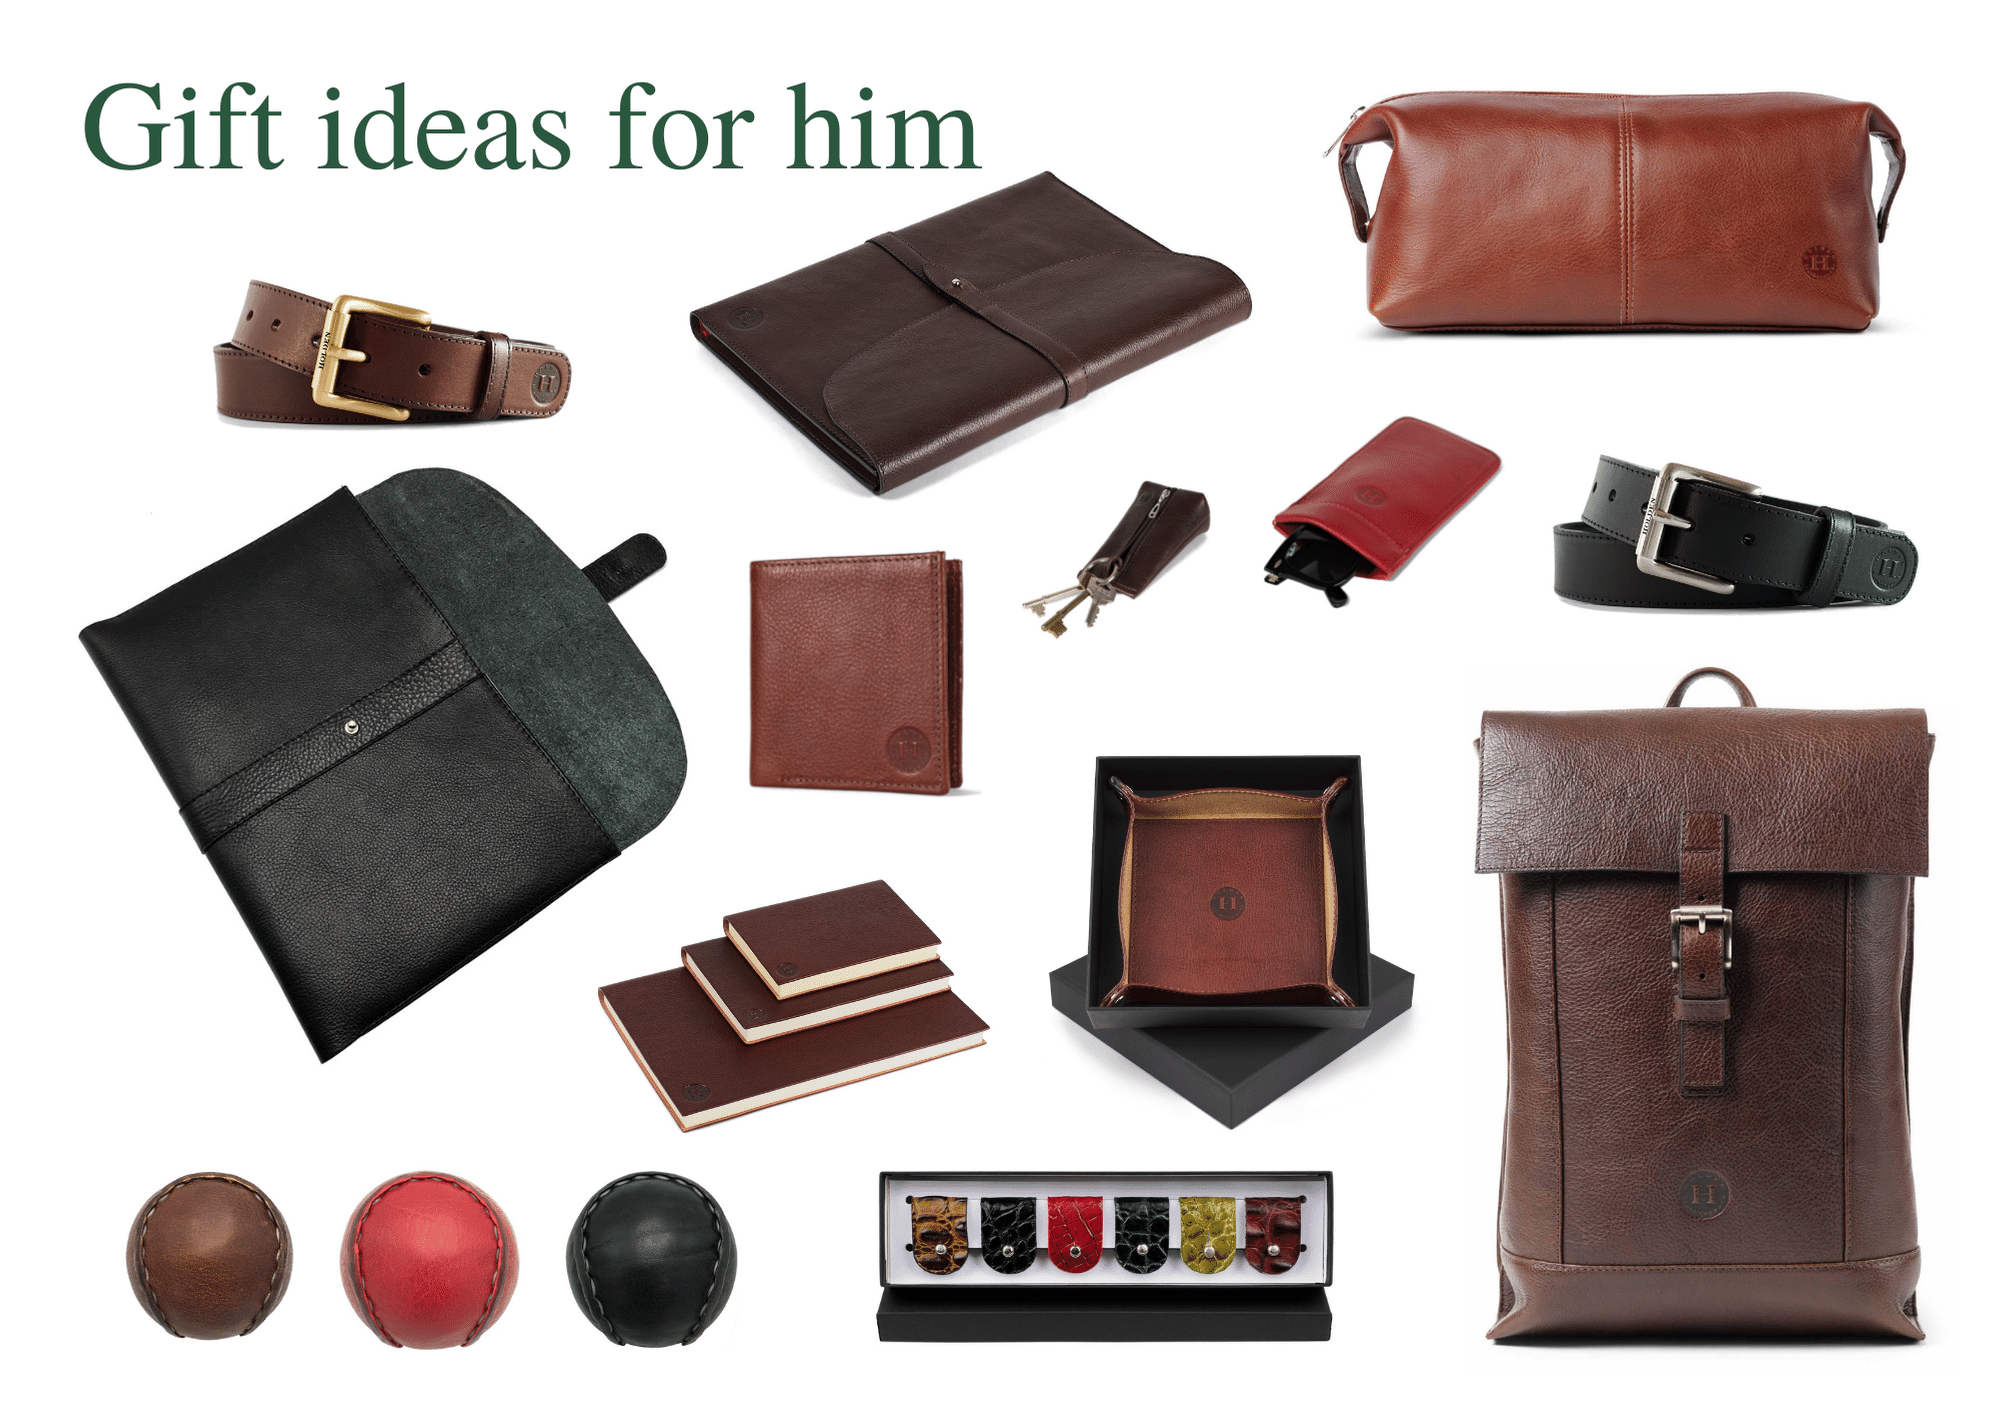 Leathergoods gift ideas for men, for Father's Day